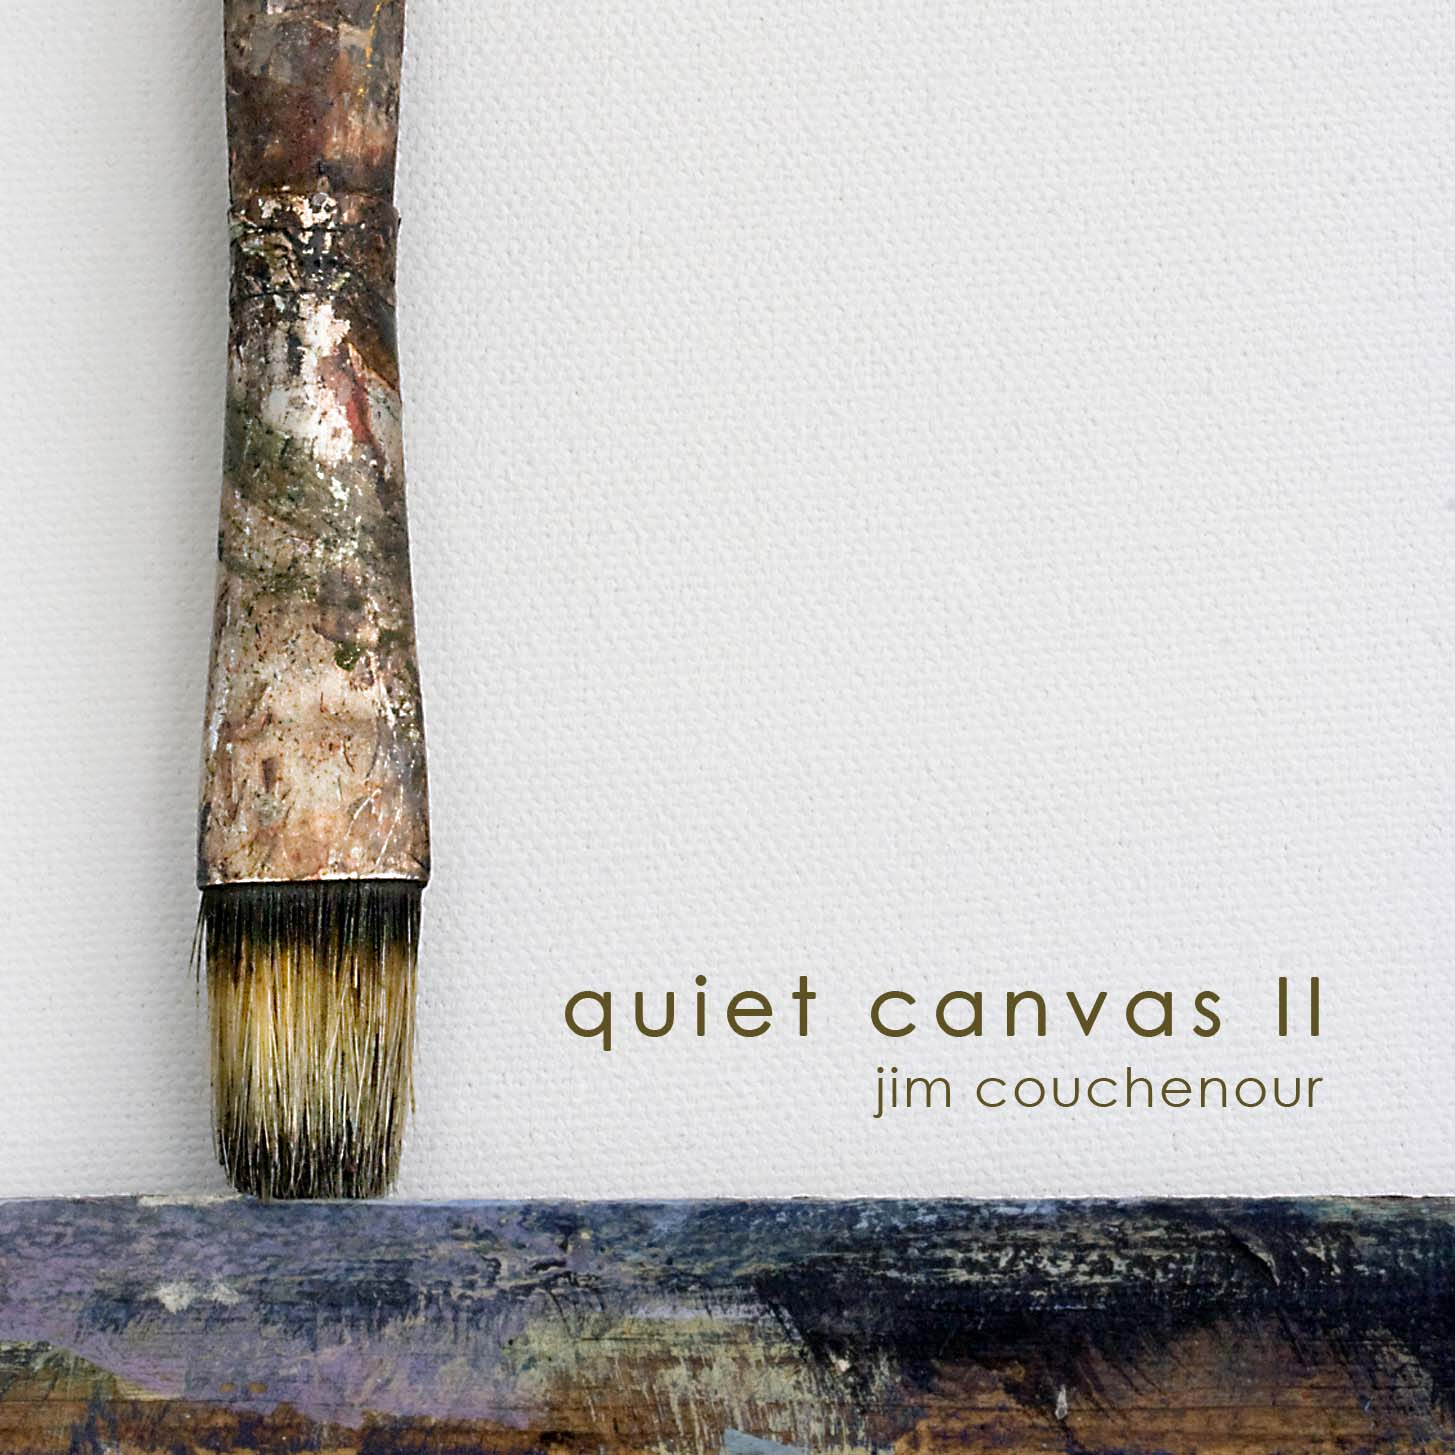 quiet canvas II cd cover.jpg